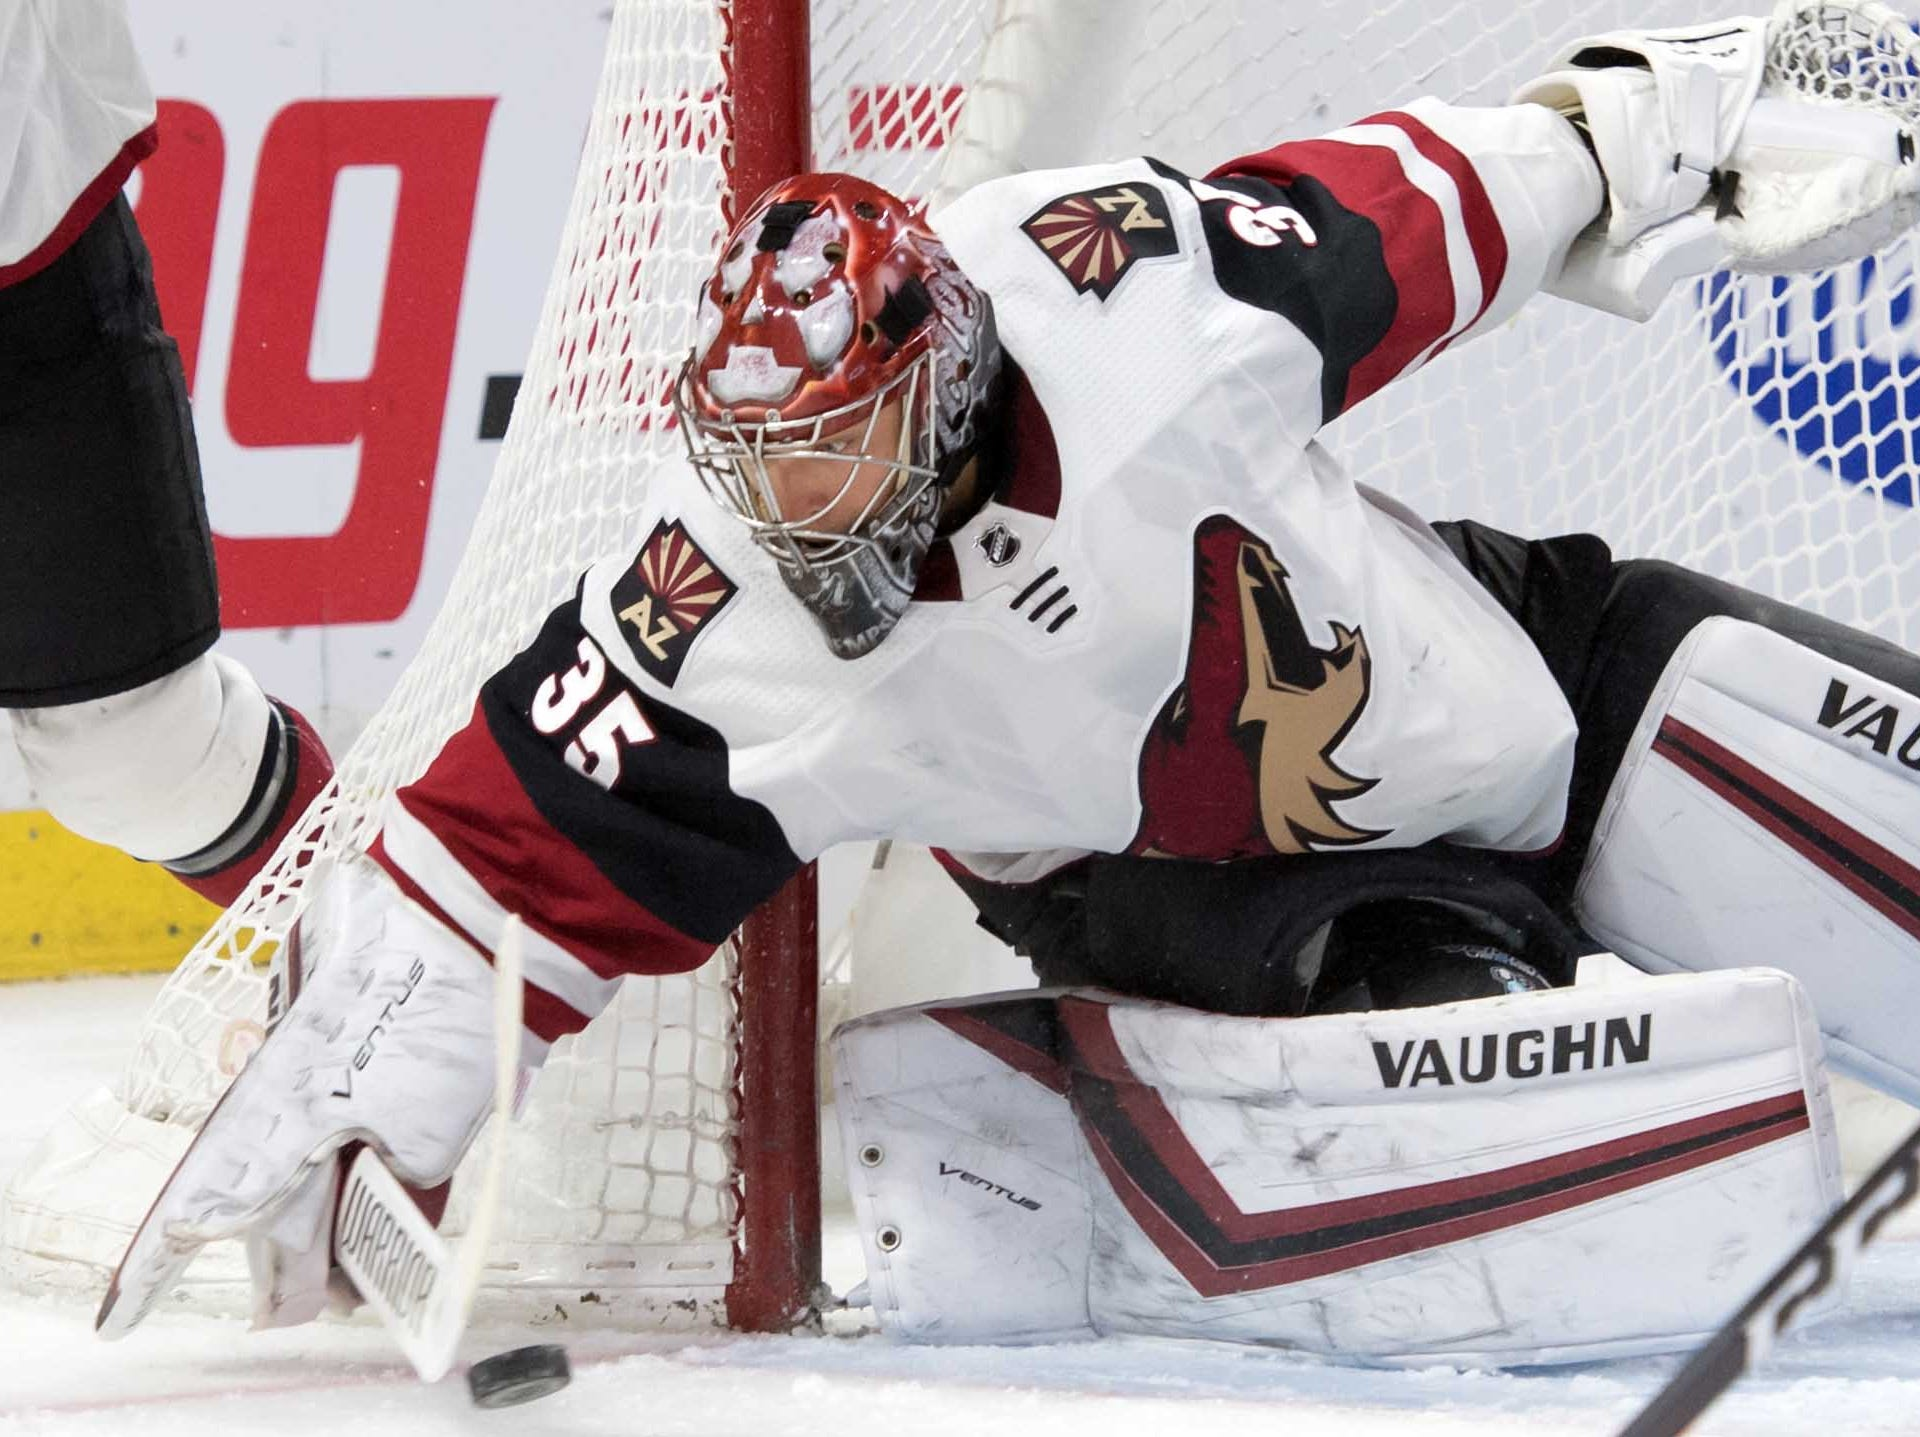 Jan 22, 2019; Ottawa, Ontario, CAN; Arizona Coyotes goalie Darcy Kuemper (35) makes a save in the second period against the Ottawa Senators at the Canadian Tire Centre. Mandatory Credit: Marc DesRosiers-USA TODAY Sports